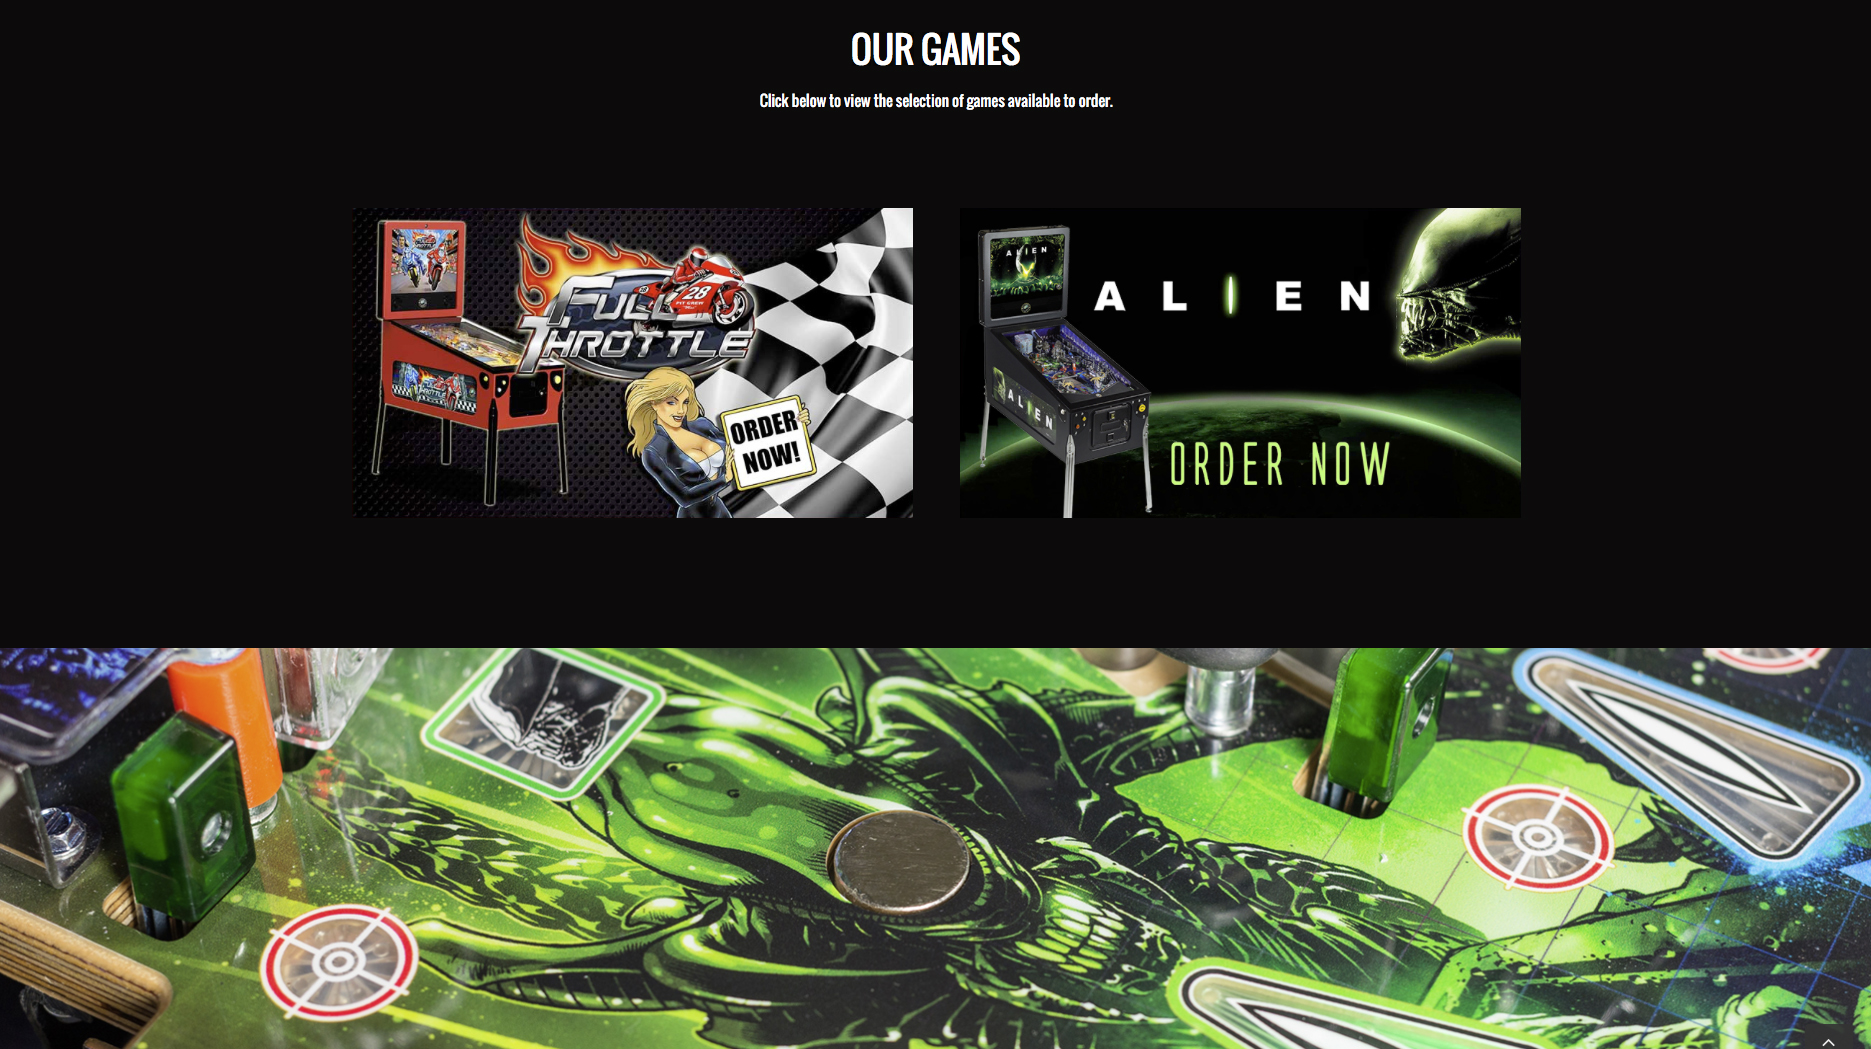 'Our Games' section web design for Heighway Pinball